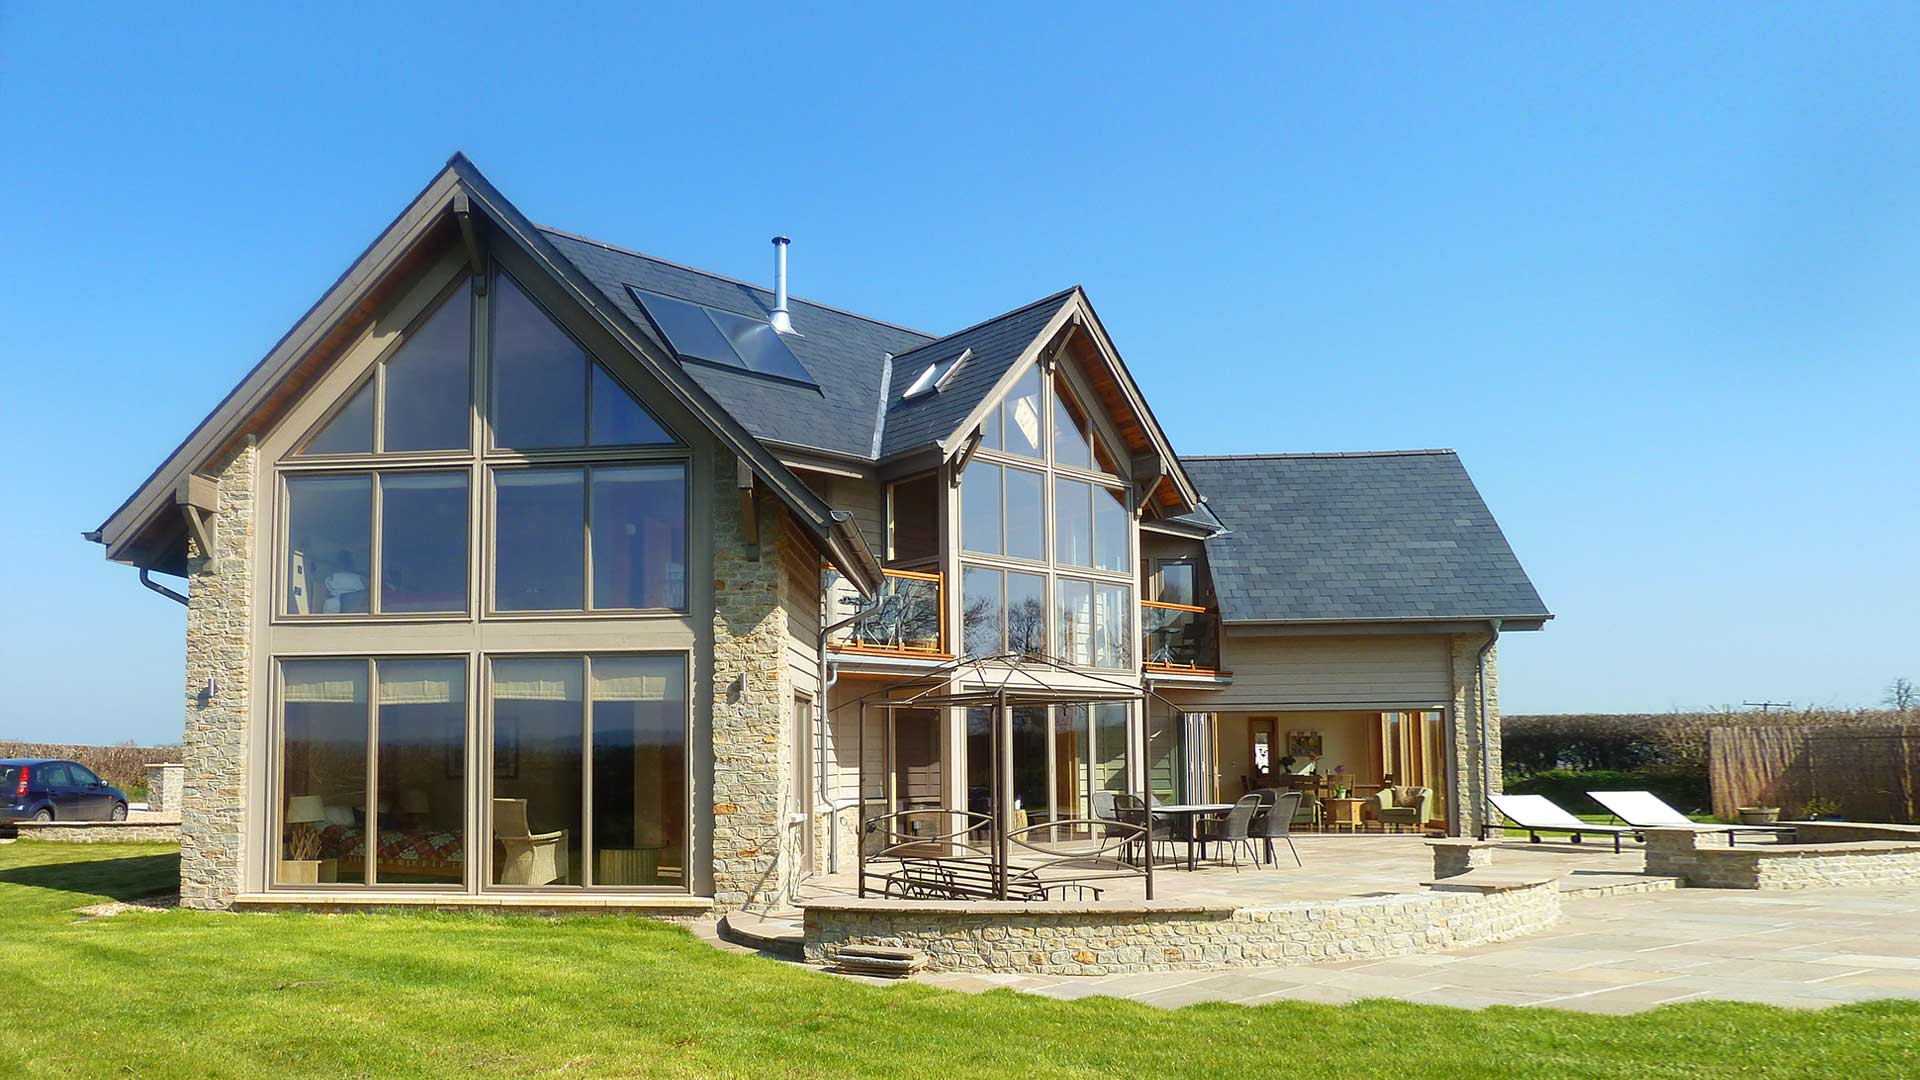 House design rural - North American Style House With Plentiful Glazing In Rural Dorset